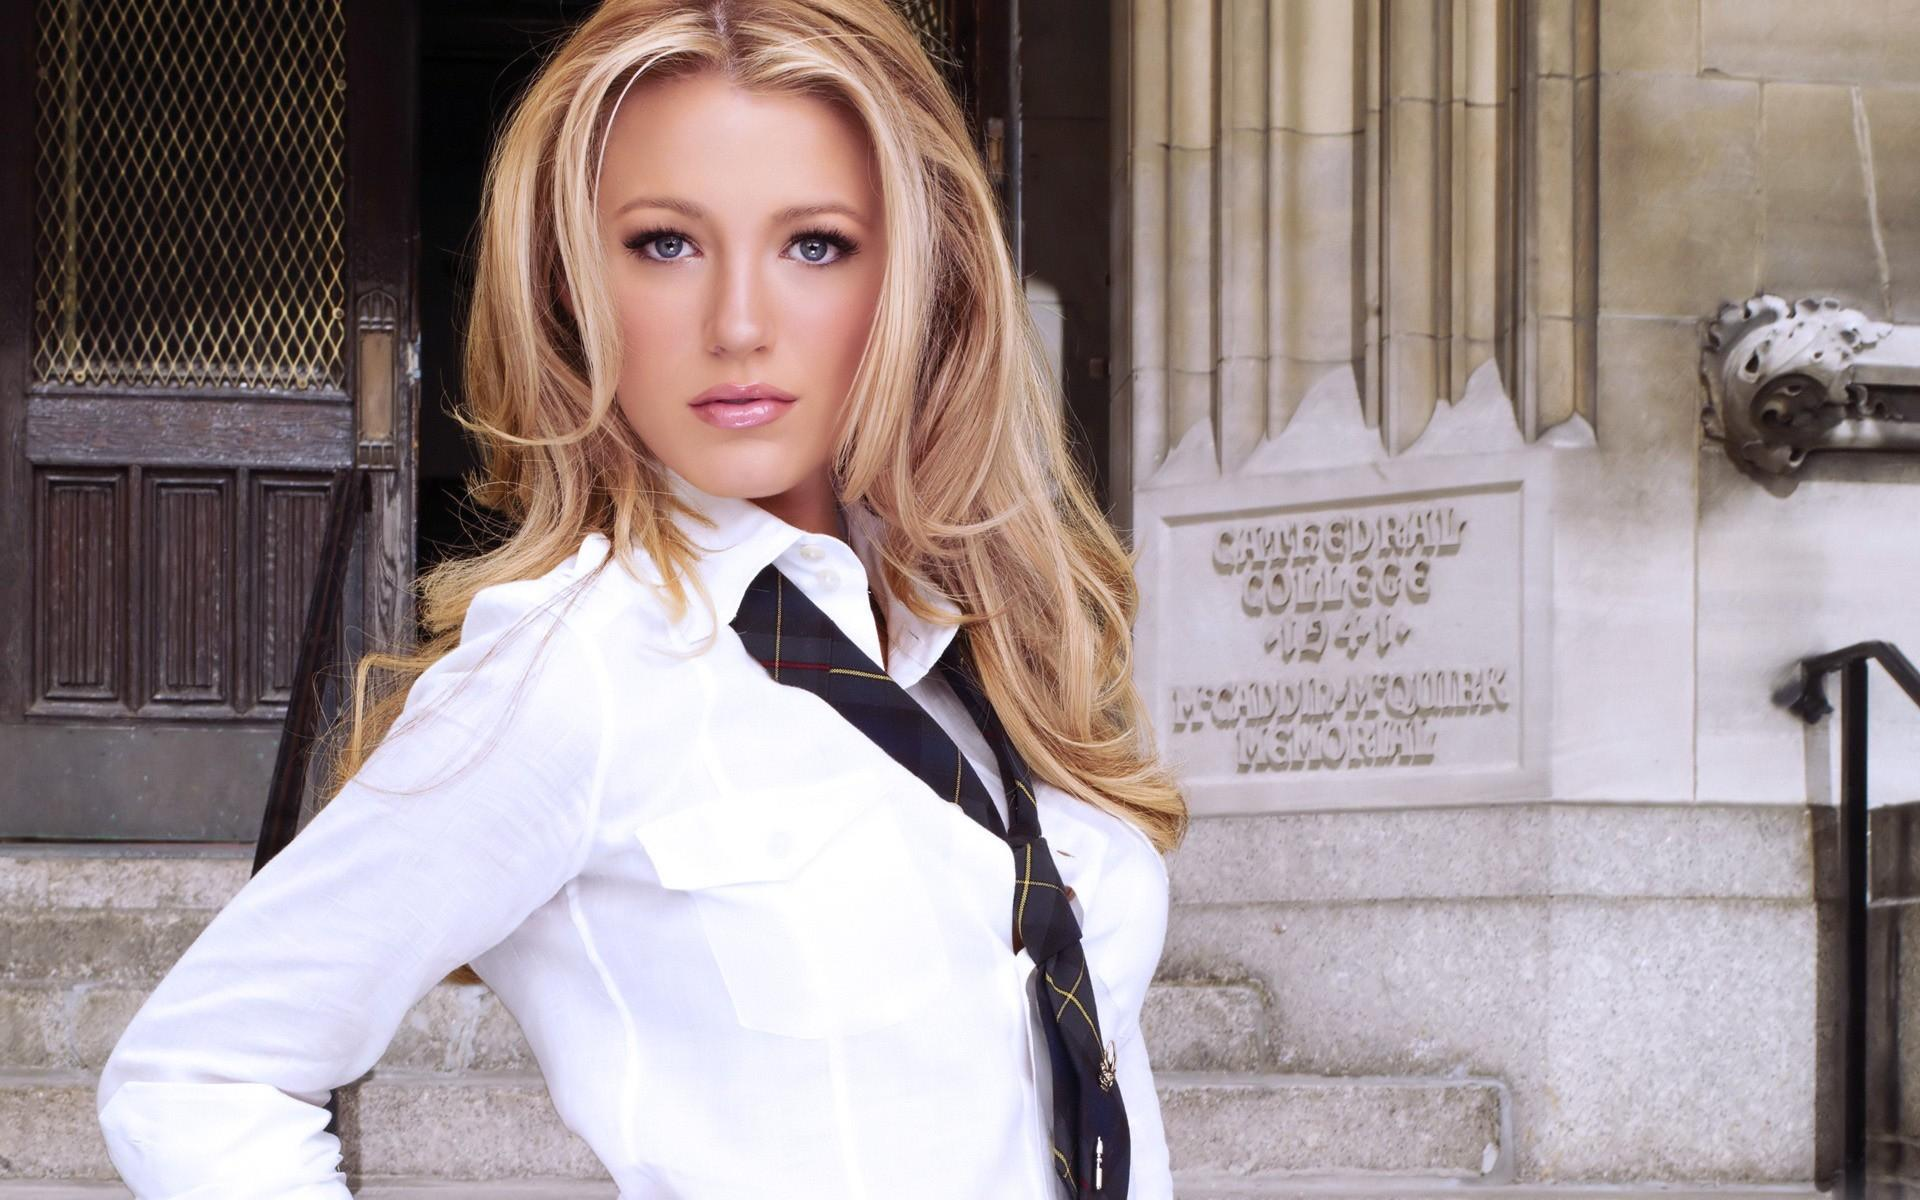 Blake Lively in White shirt 1920x1200 | Magicwallpapers.net